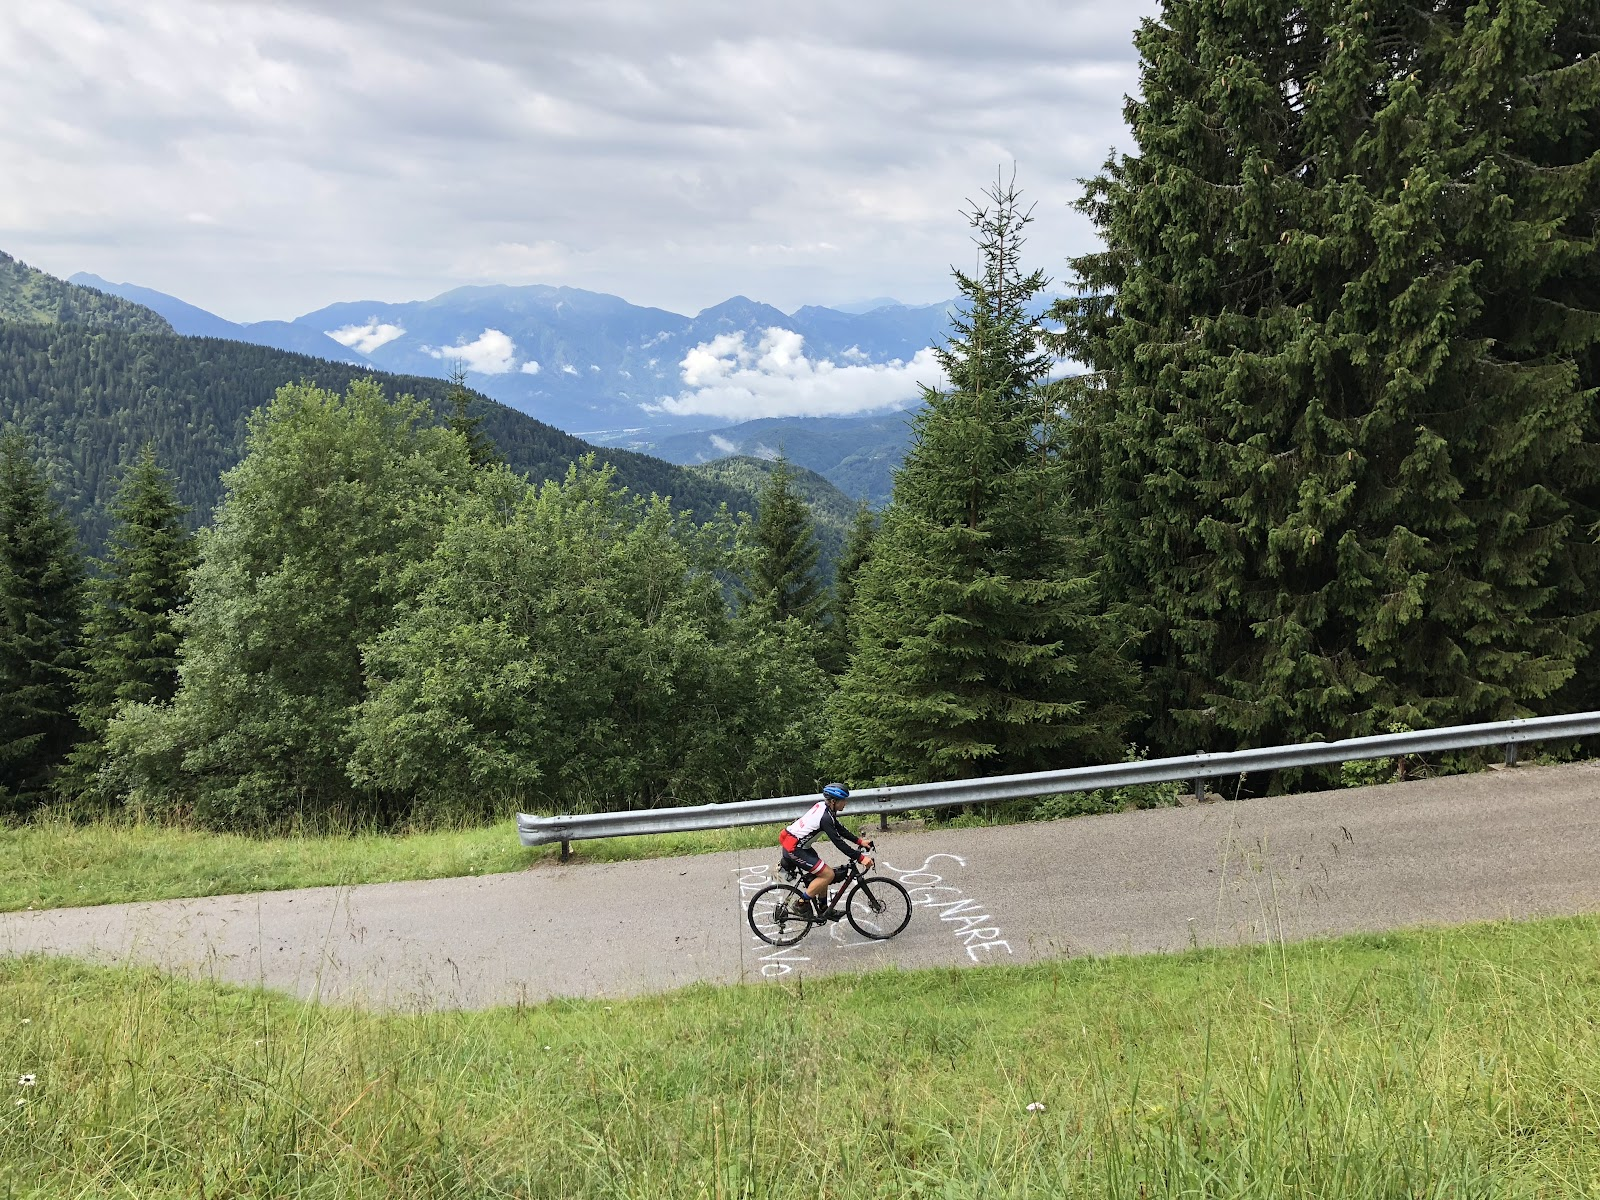 Cycling Monte Zoncolan from Ovaro - cyclist below riding on road over giro d'italia paint